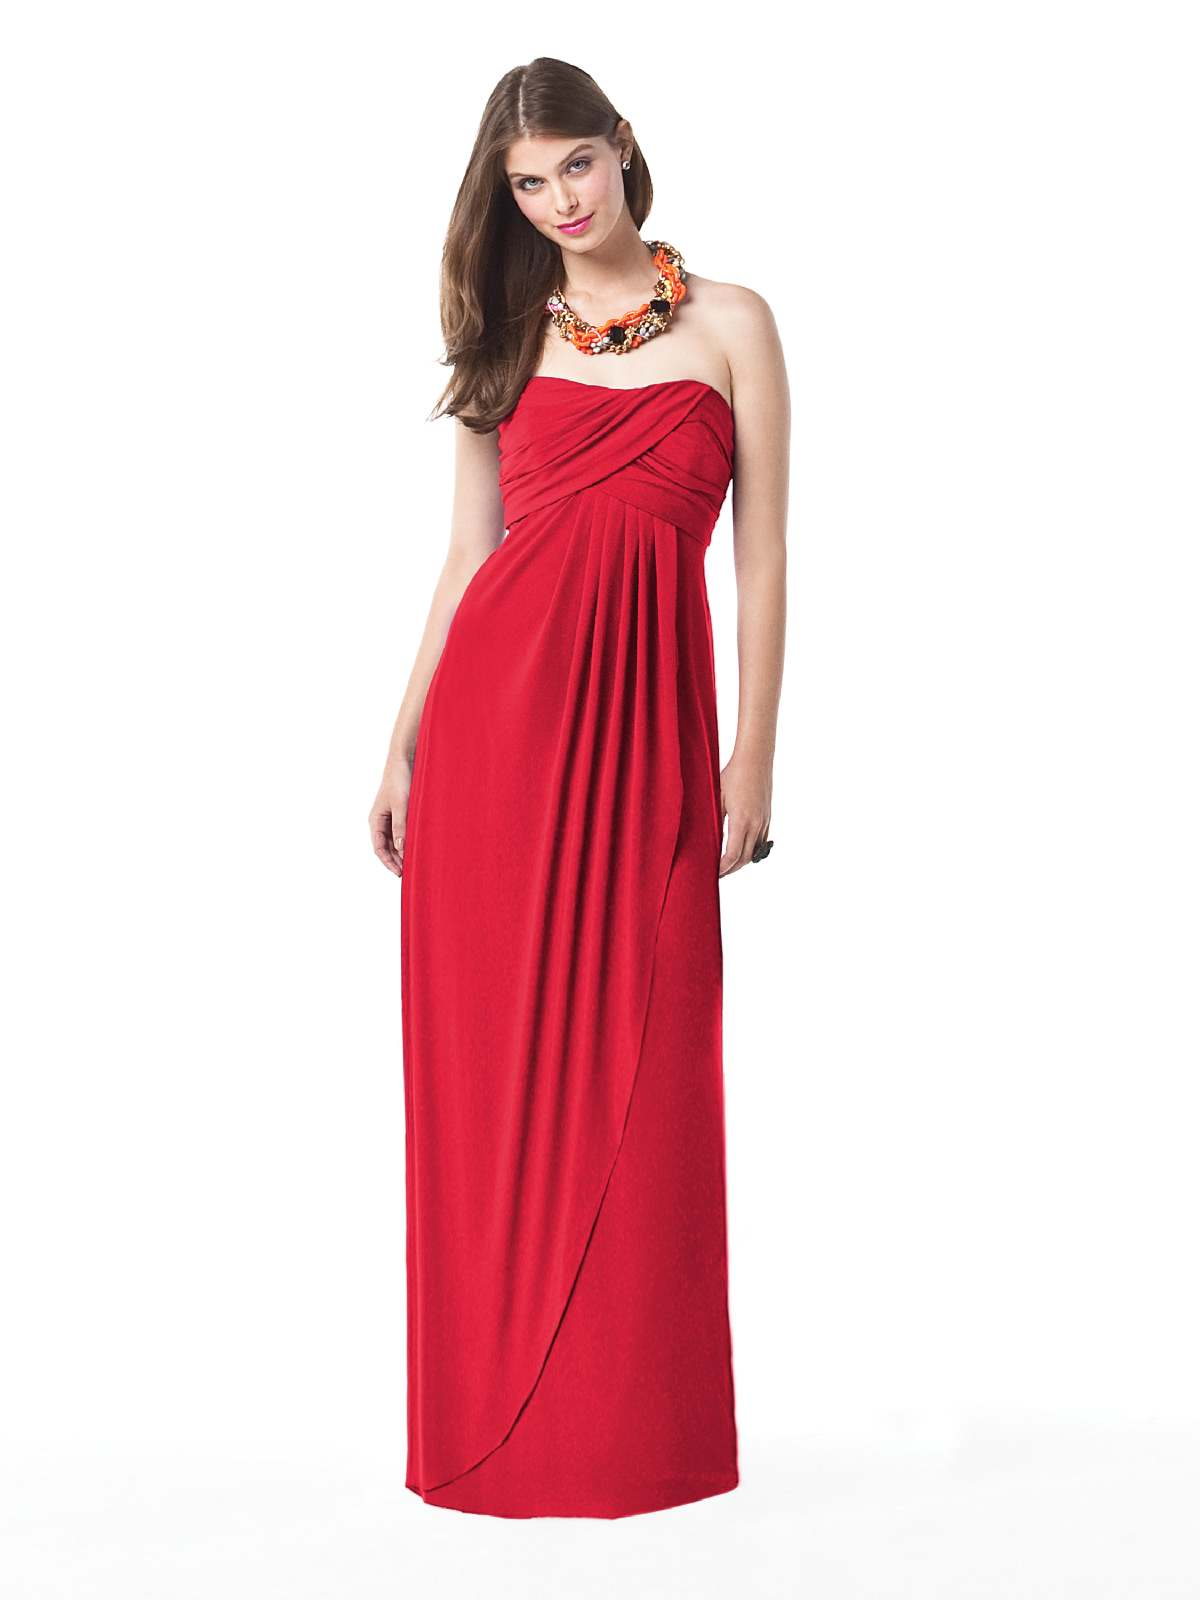 Red Empire Strapless Drape Floor Length Chiffon Prom Dresses With Ruffles